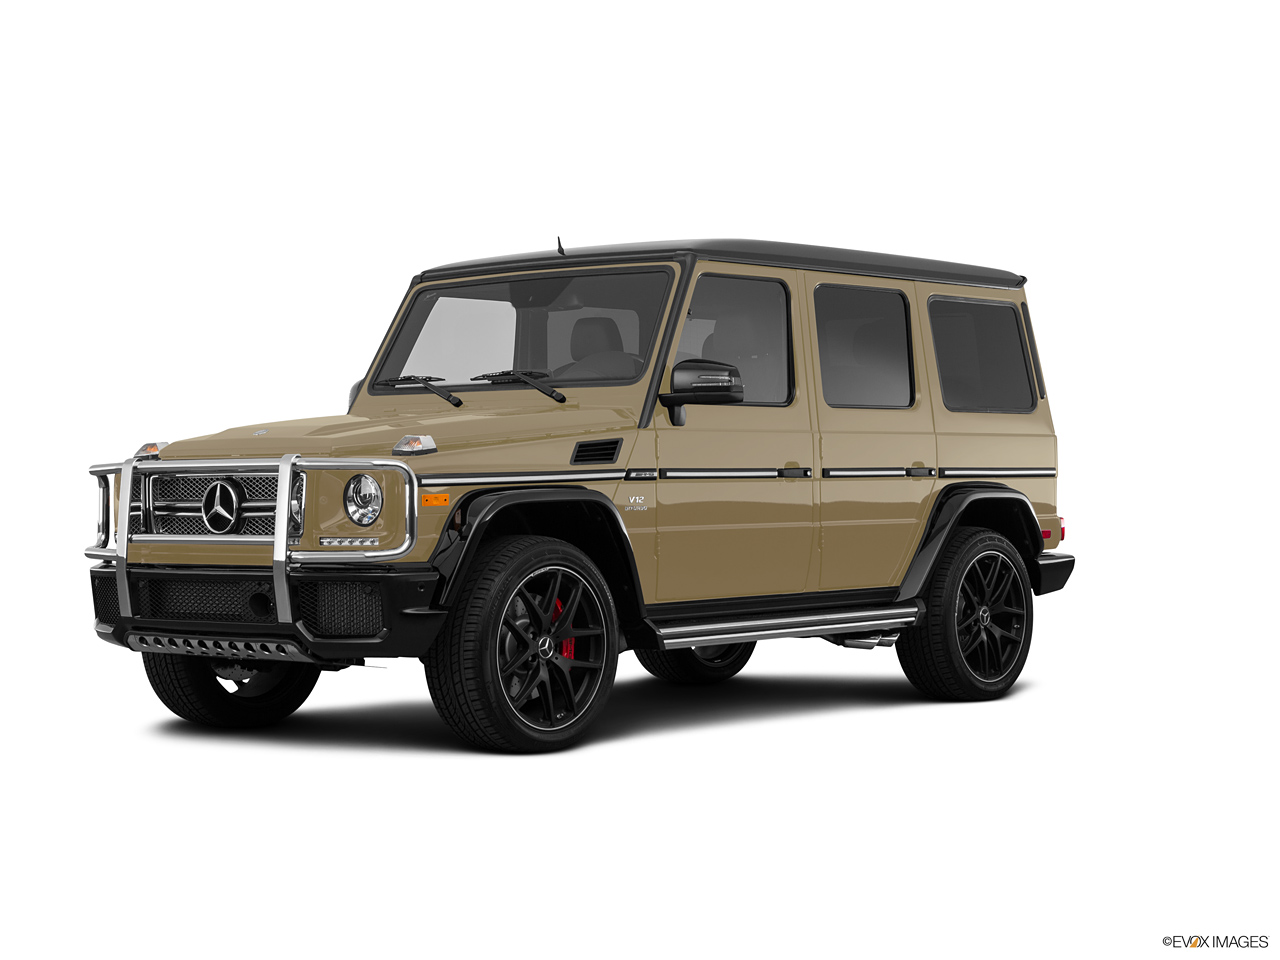 Car pictures list for mercedes benz g class 2017 g500 4x4 for Mercedes benz 4x4 2017